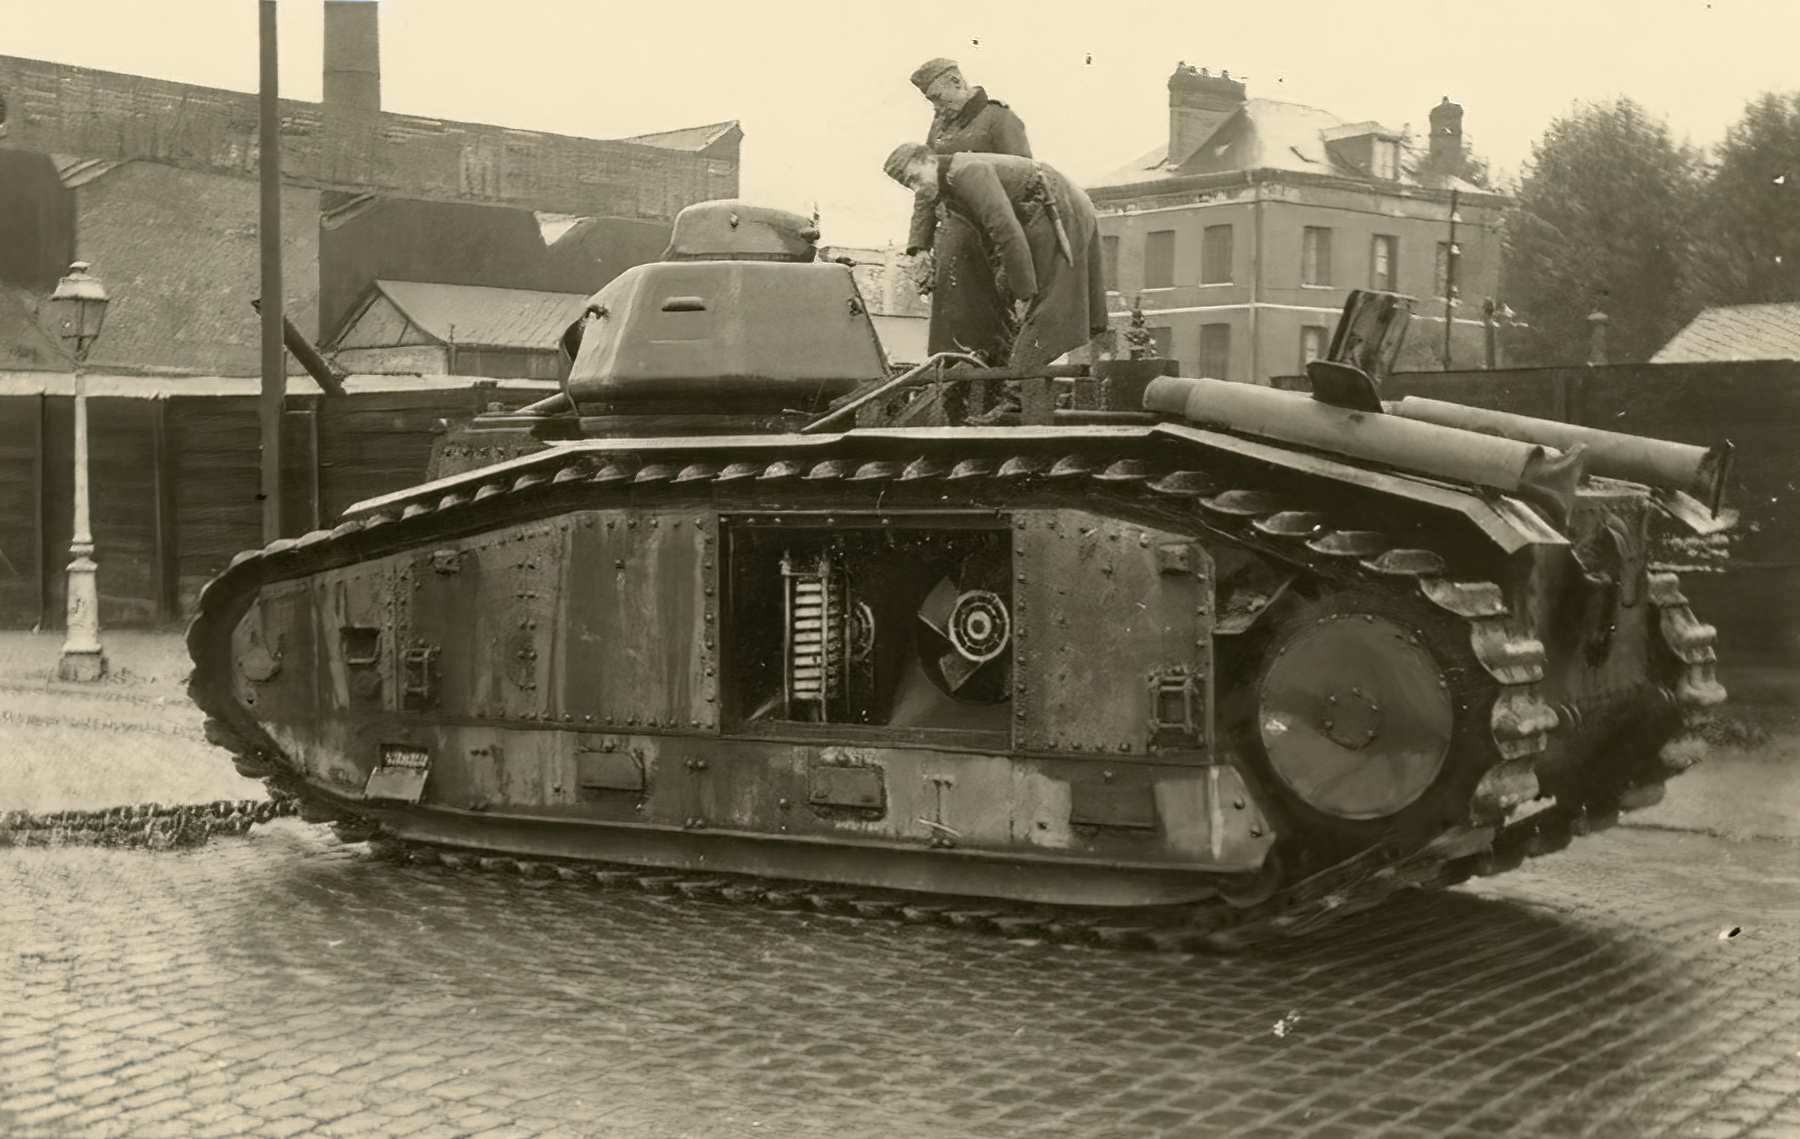 French Army Renault Char B1 captured in Belgium May 1940 ebay 01